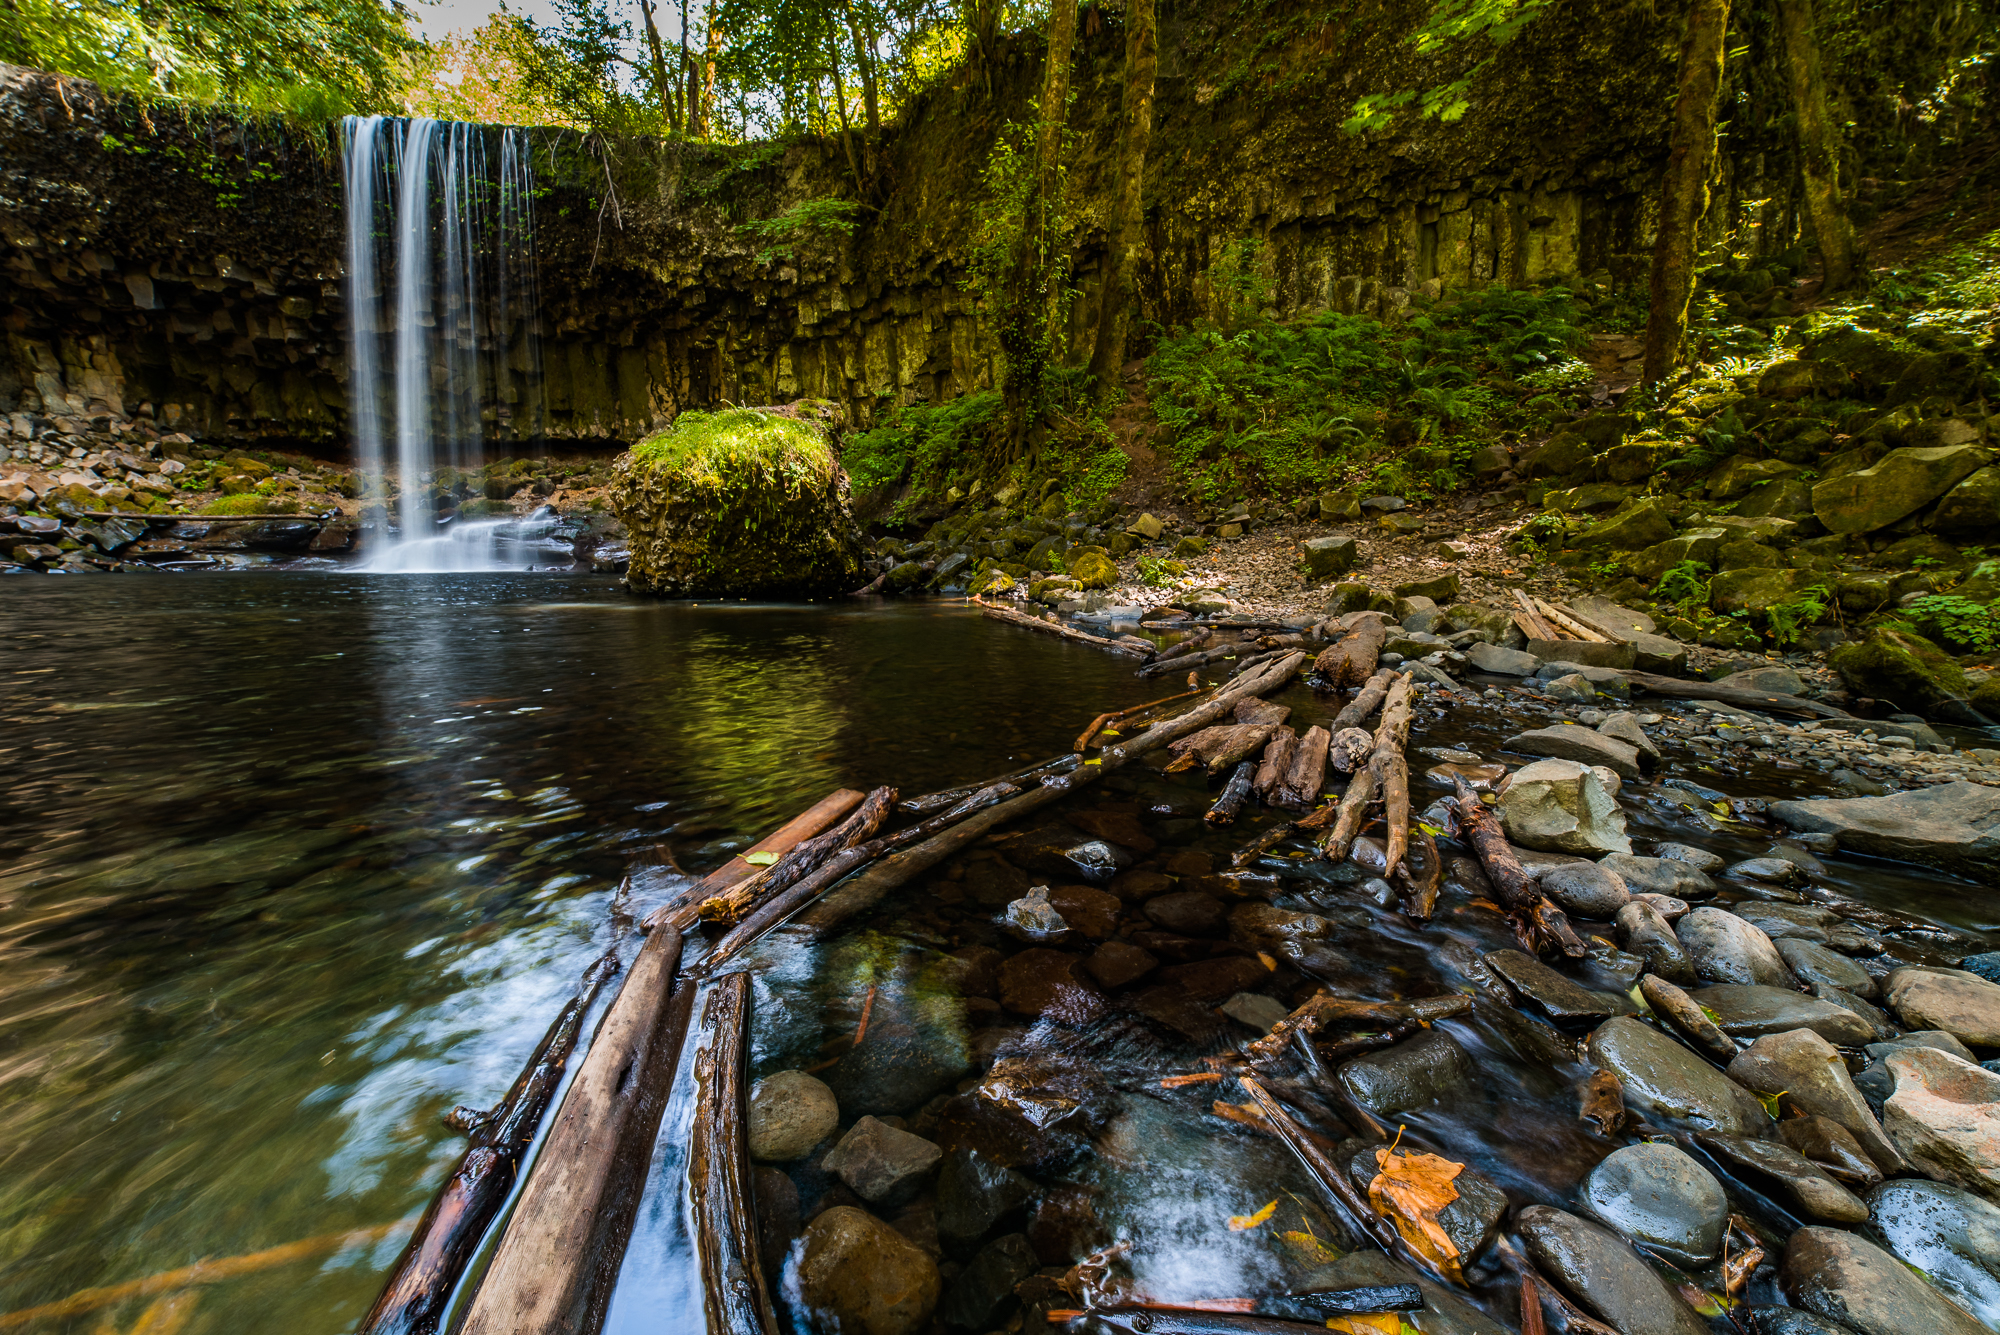 An image from a prior trip to Beaver Falls.